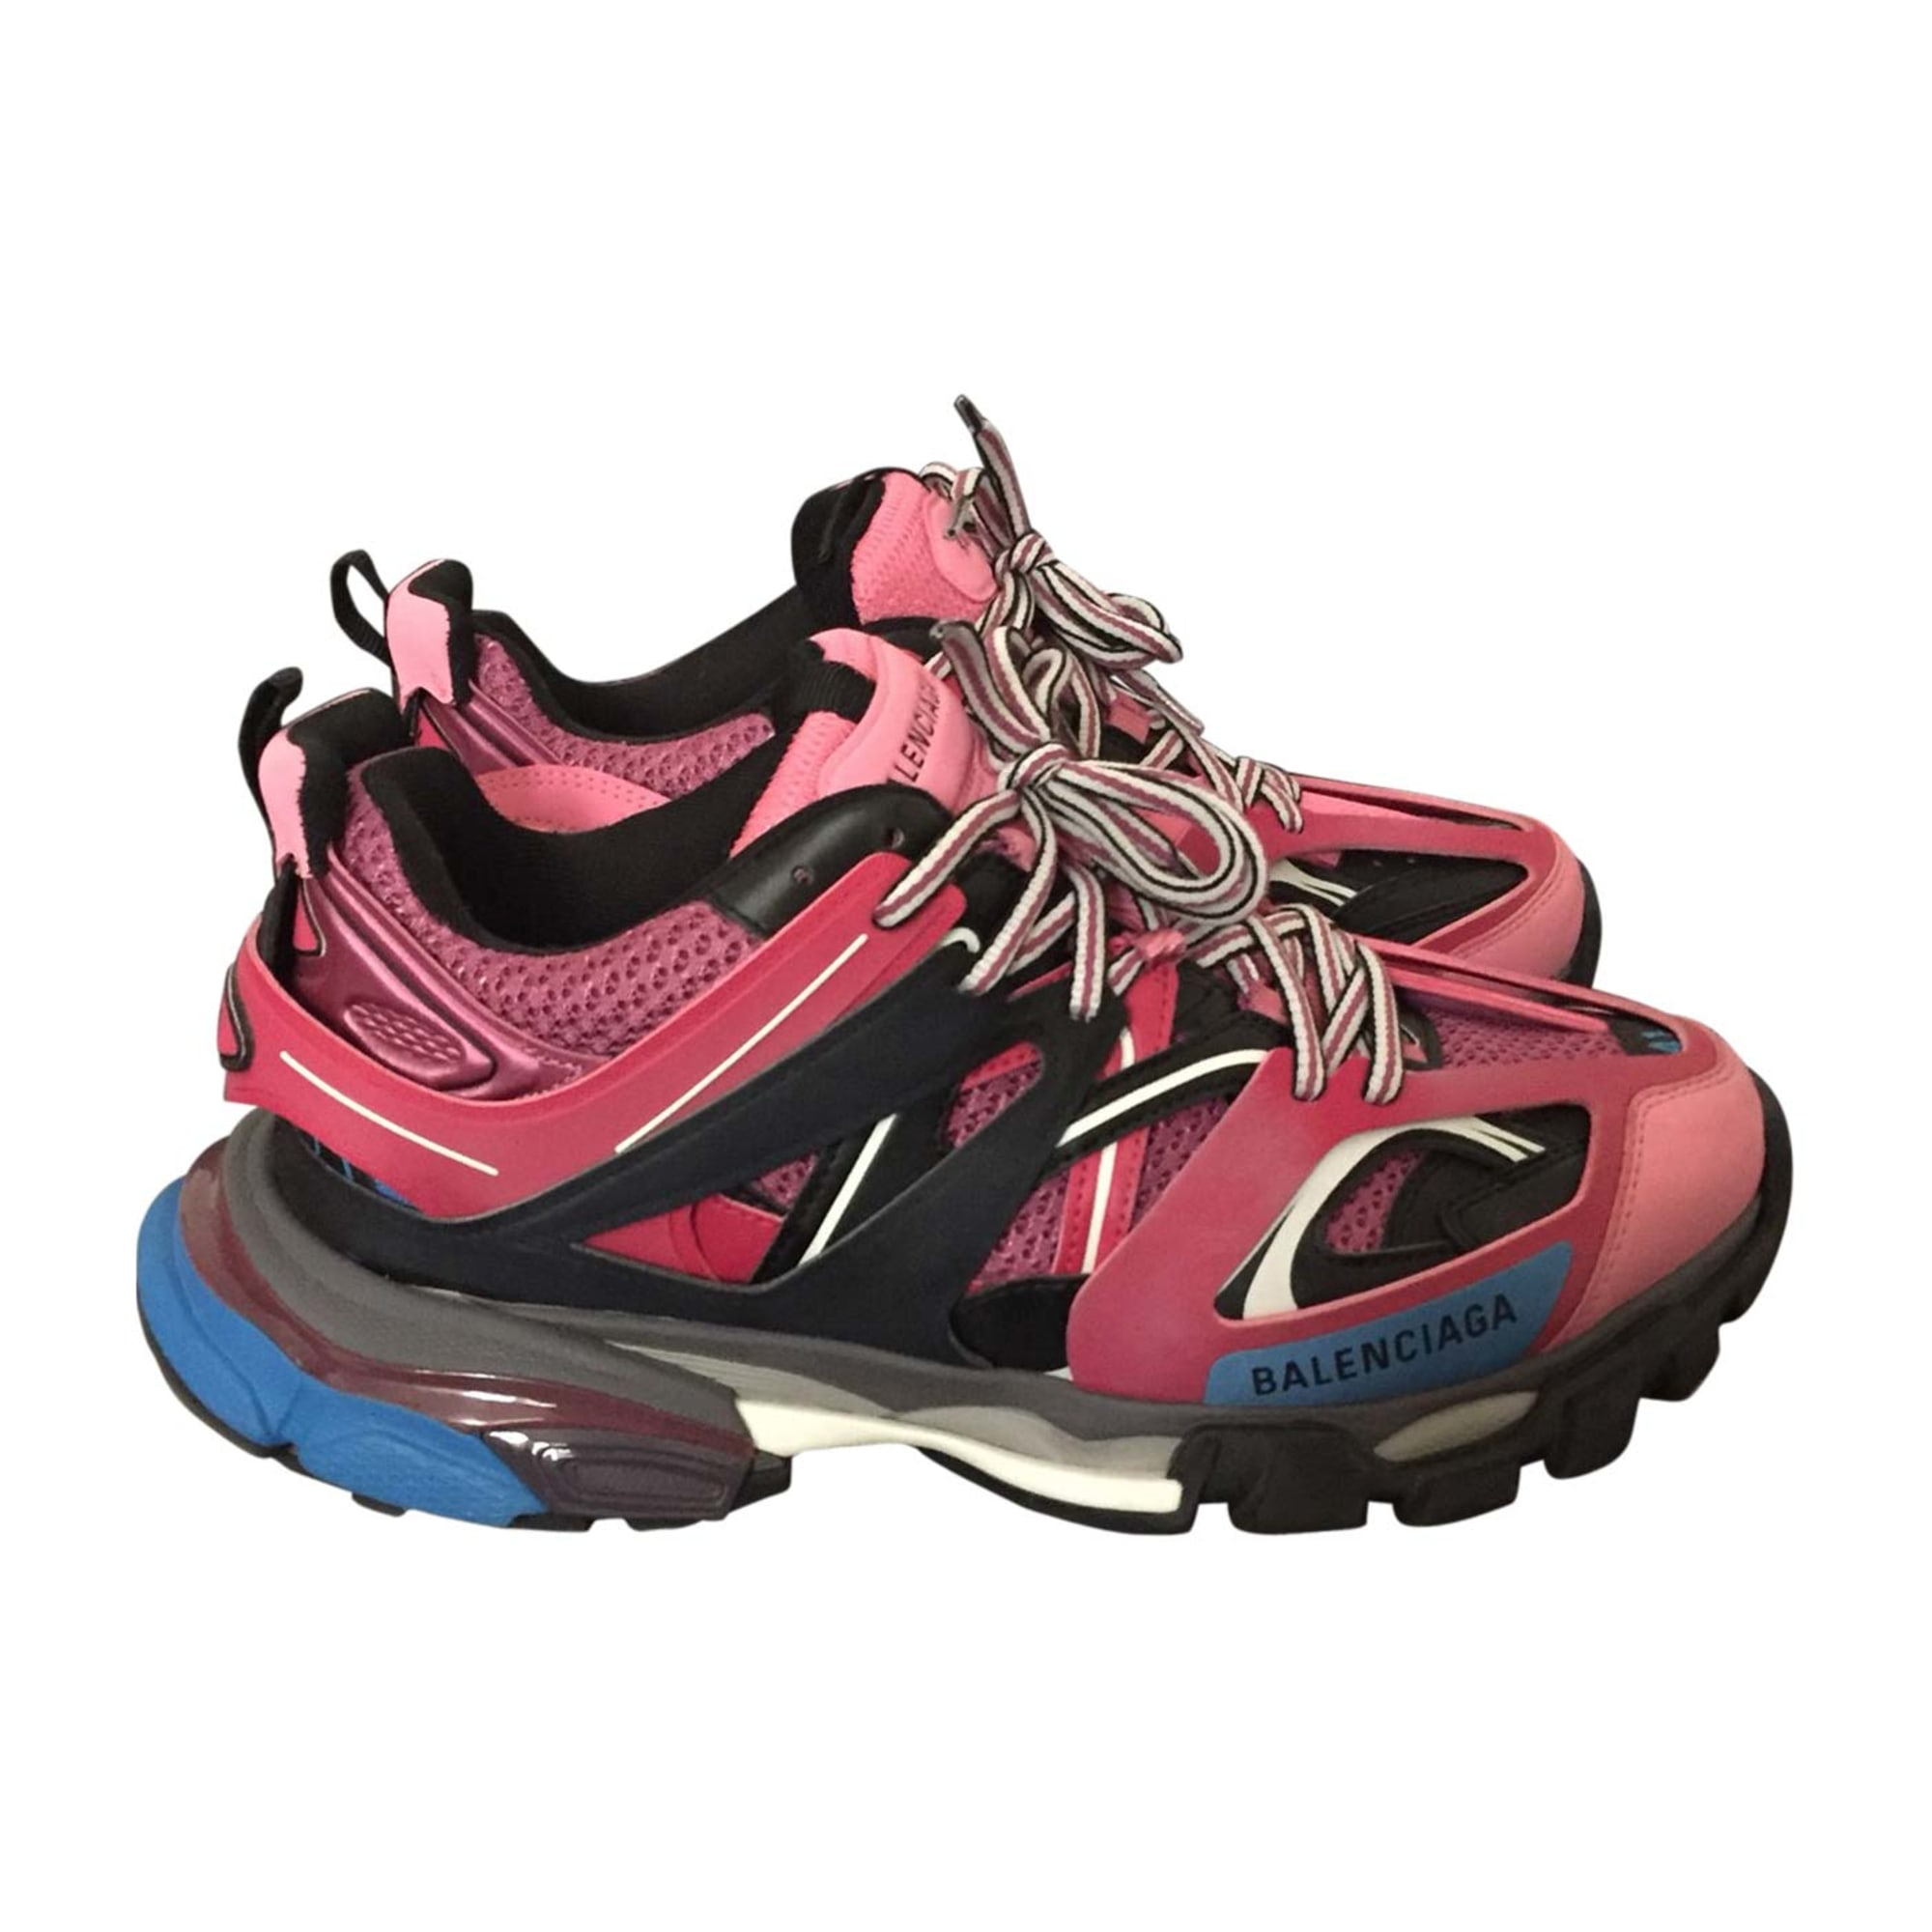 Sneakers BALENCIAGA Pink, fuchsia, light pink